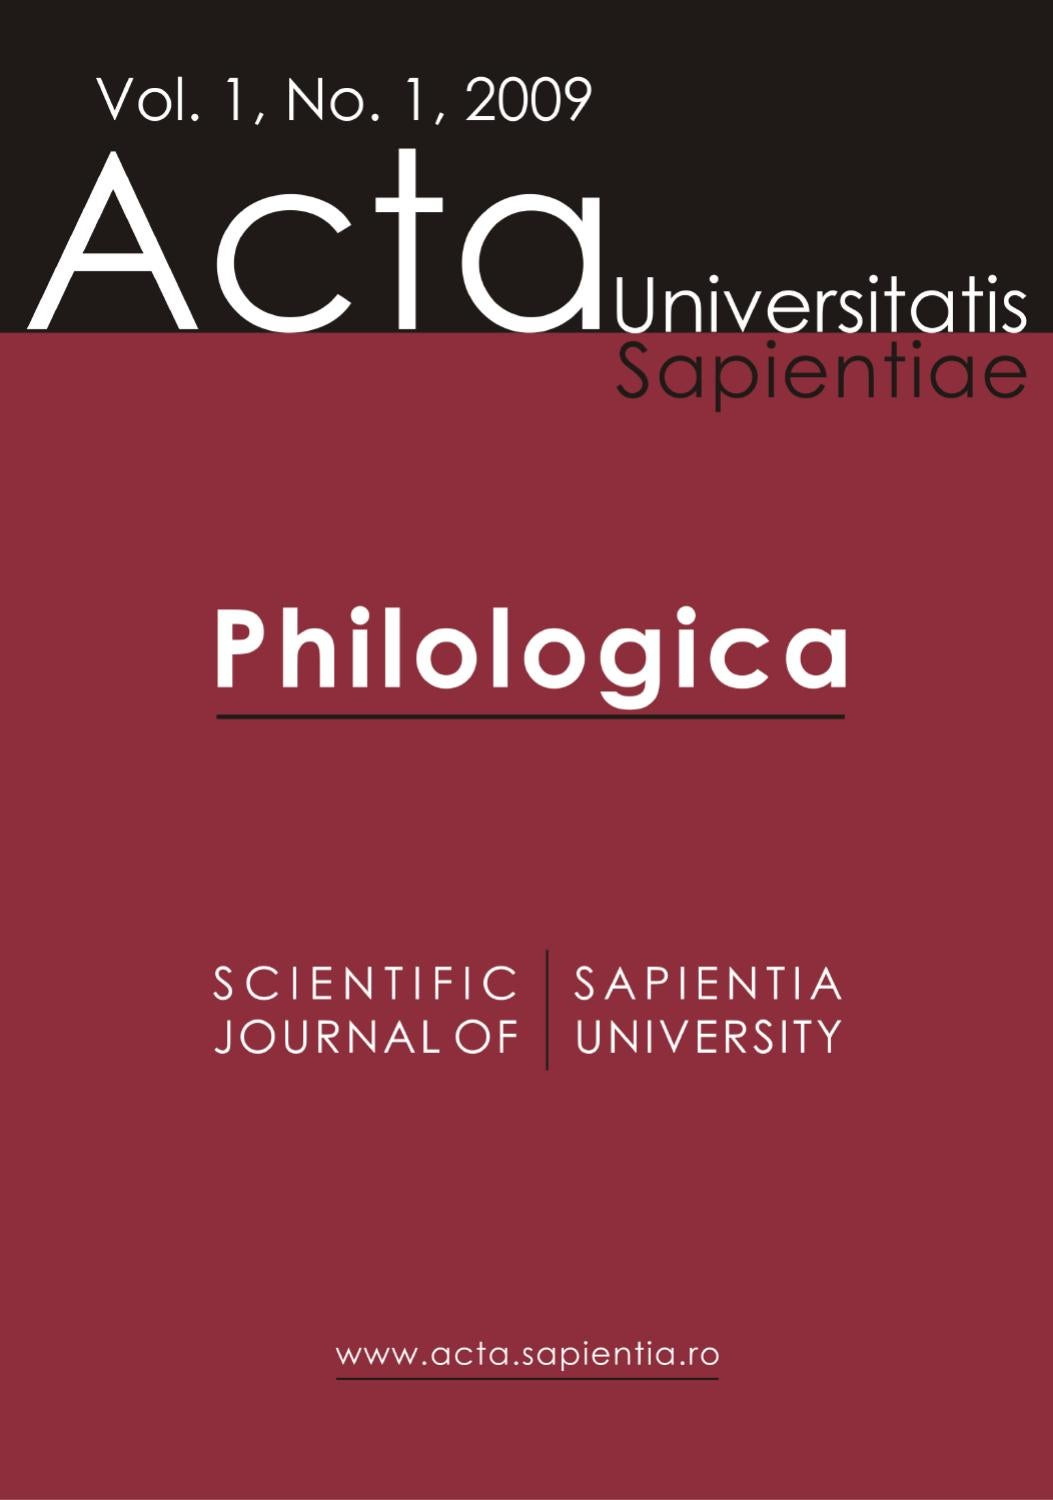 Philologica Vol 1 No 2009 By Acta Universitatis Sapientiae Issuu Certainty Tape Regular L 10 Free 2 Mitu Travel Pack